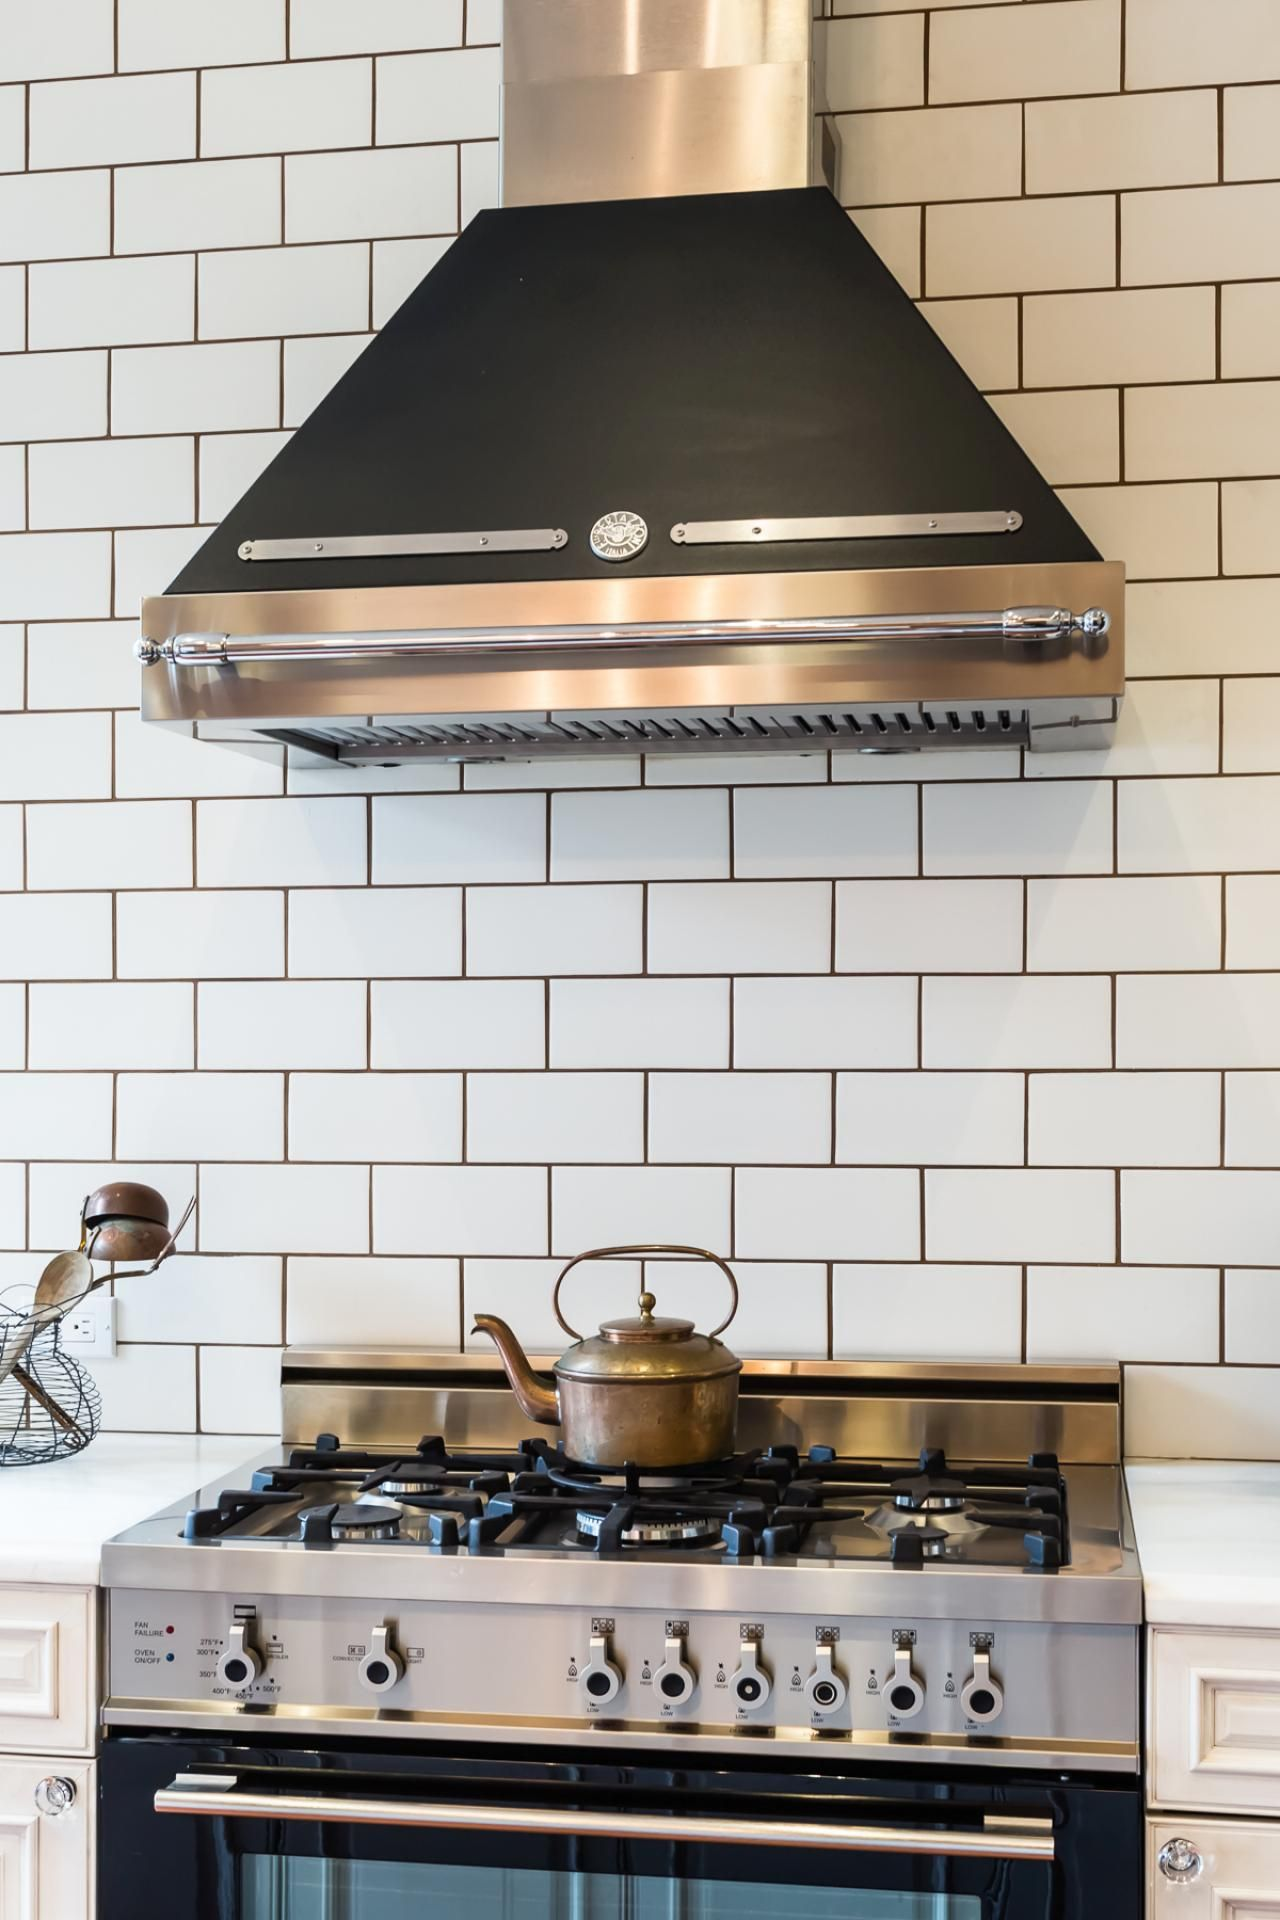 How To Regrout Kitchen Backsplash